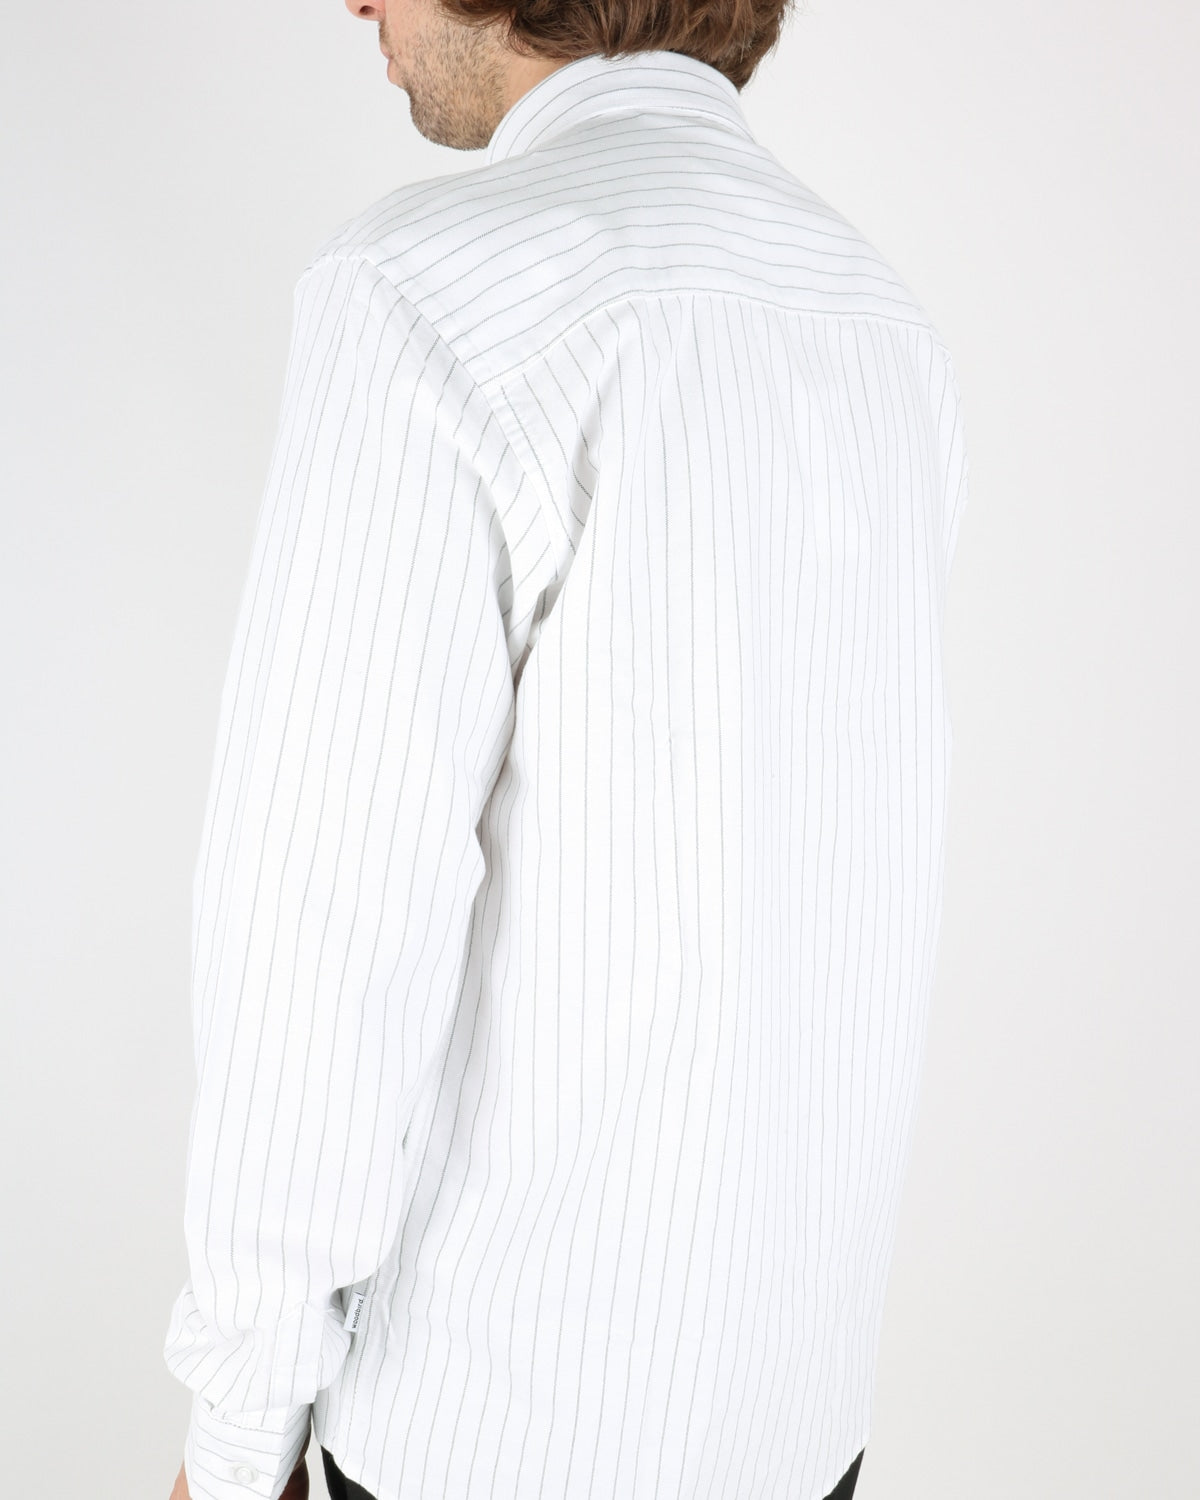 woodbird_trime stripe shirt_white grey_4_4